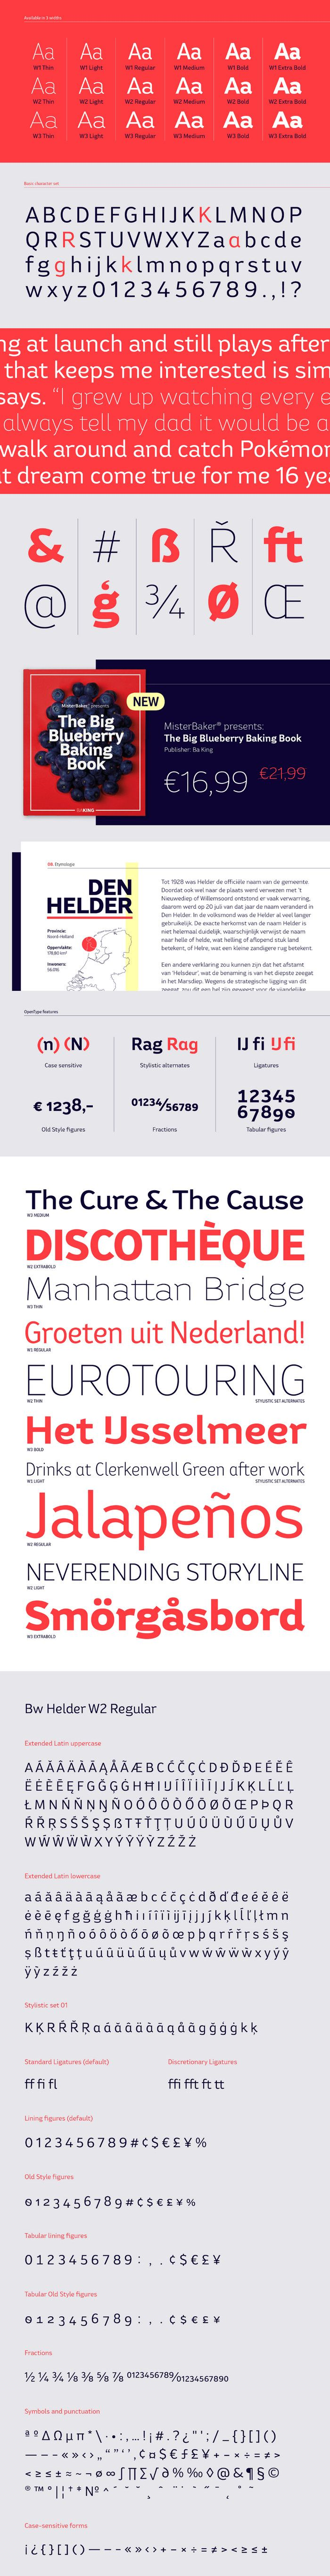 Bw Helder Font Family This is a family of fonts with 18 professional fonts. Add it to your fonts collection as it is suitable for many of your work.Y